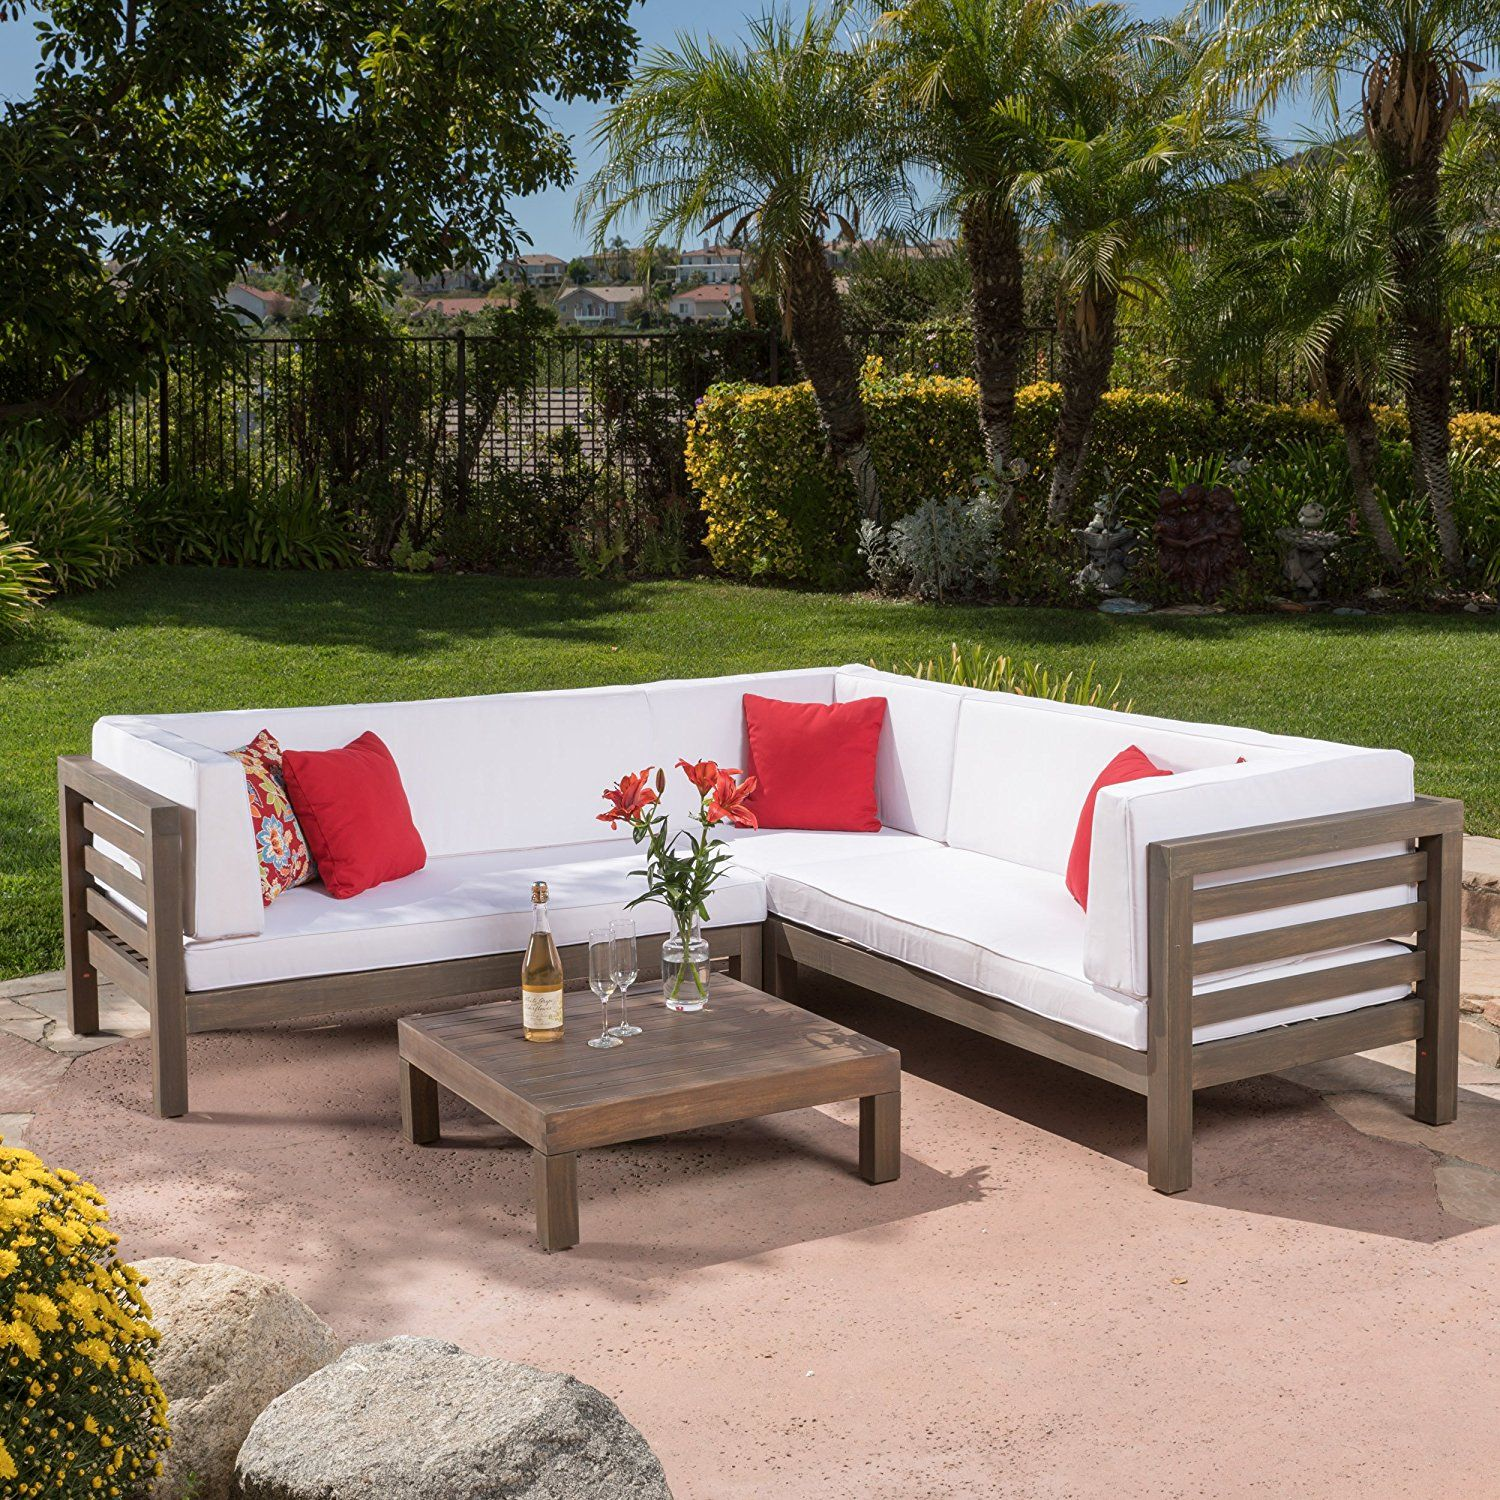 Amazon Com Ravello Outdoor Patio Furniture 4 Piece Wooden Sectional Sofa Set W X2f Water Resistant Outdoor Sectional Patio Sectional Patio Furniture Deals